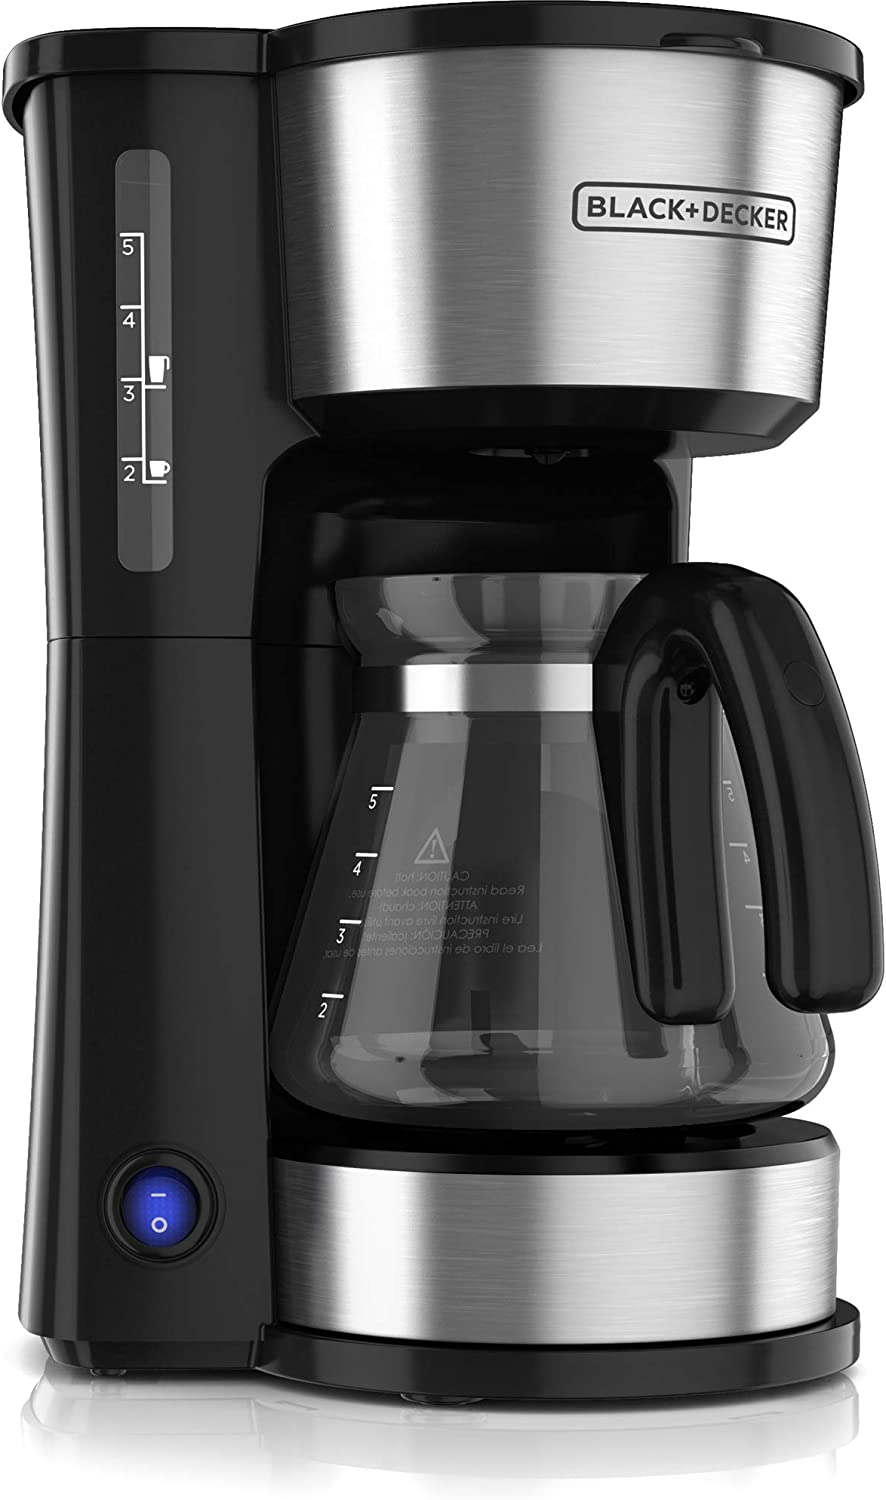 BLACK+DECKER CM0755S-CL 4-in-1 Coffee Maker, 220V (Not for USA-European Cord), 5 Cup